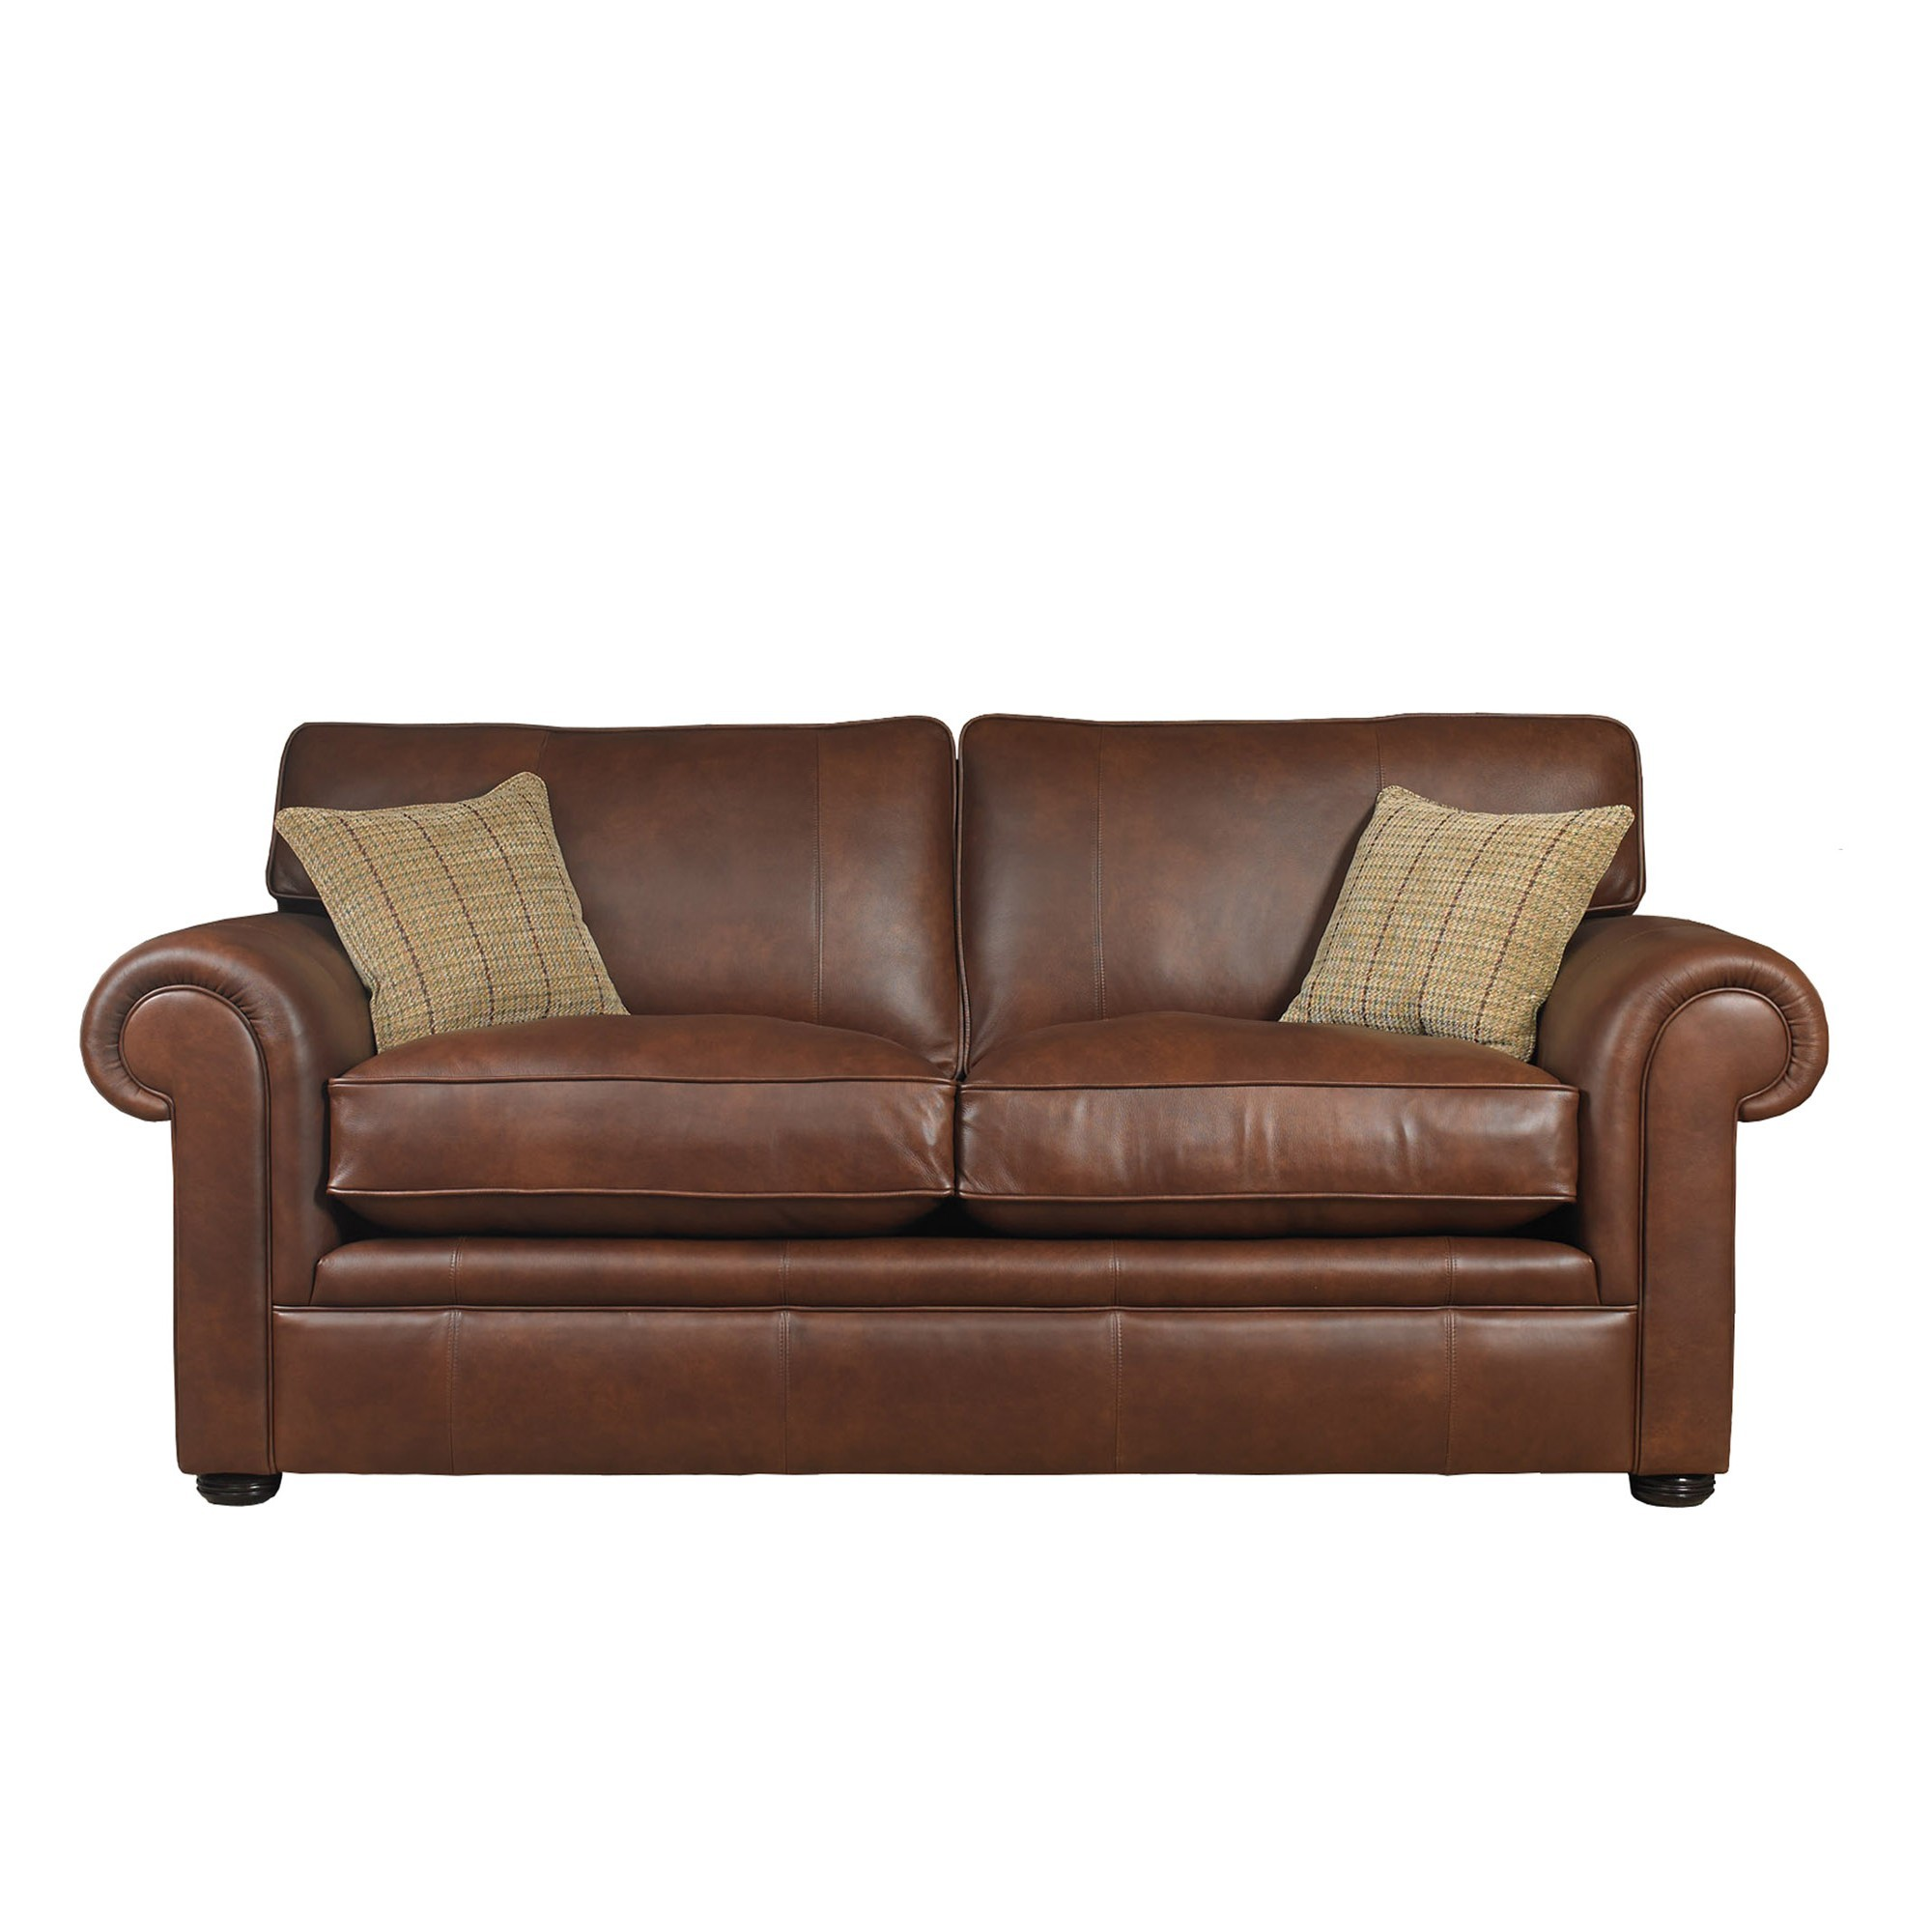 Wade Upholstery Barnaby Large Formal Back Sofa Leather